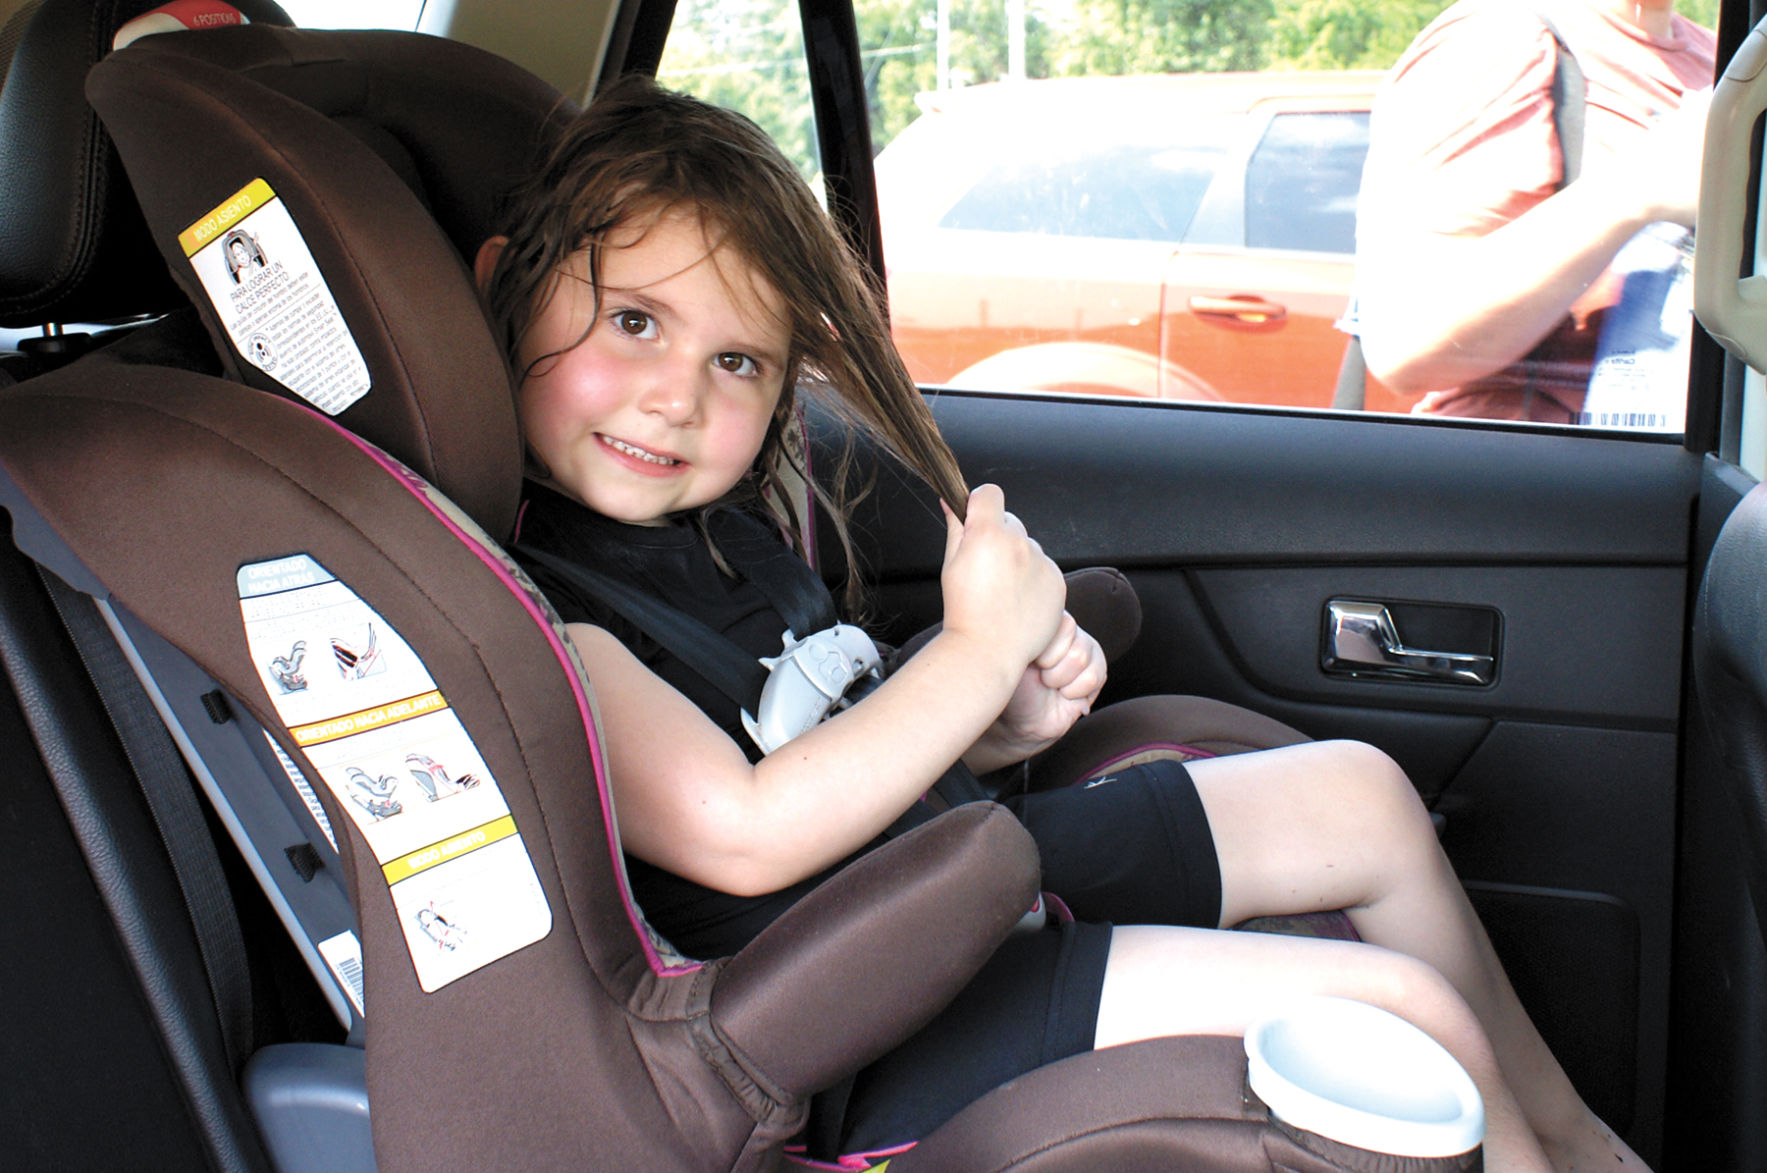 Rear Facing Car Seat Age 4 New Oklahoma Law Sets New Car Seat Regulations For Kids